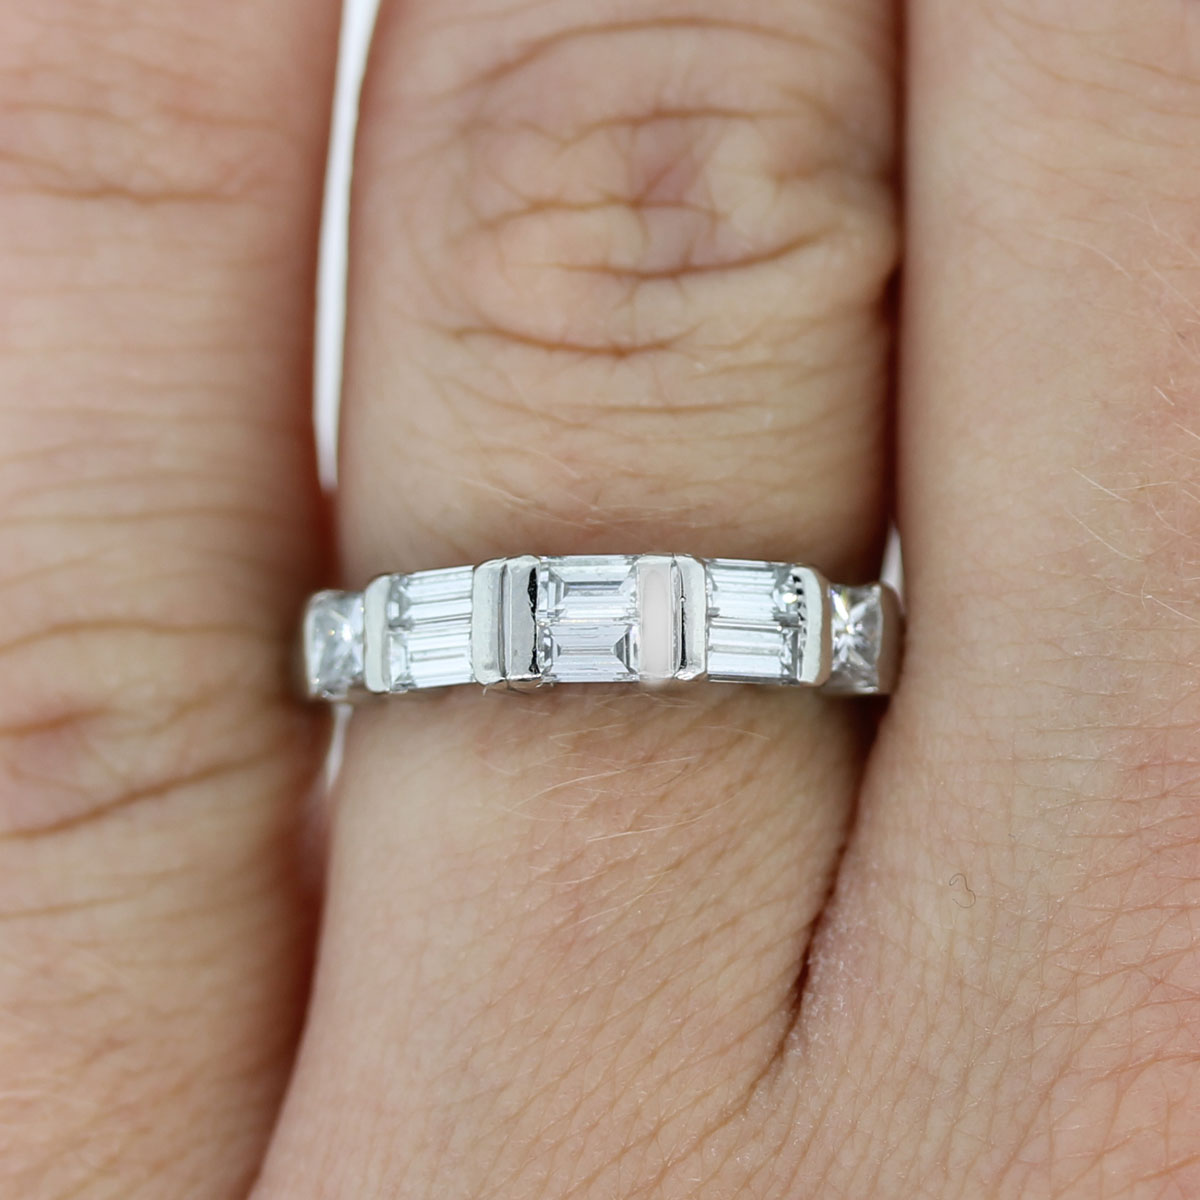 Princess cut ring on finger